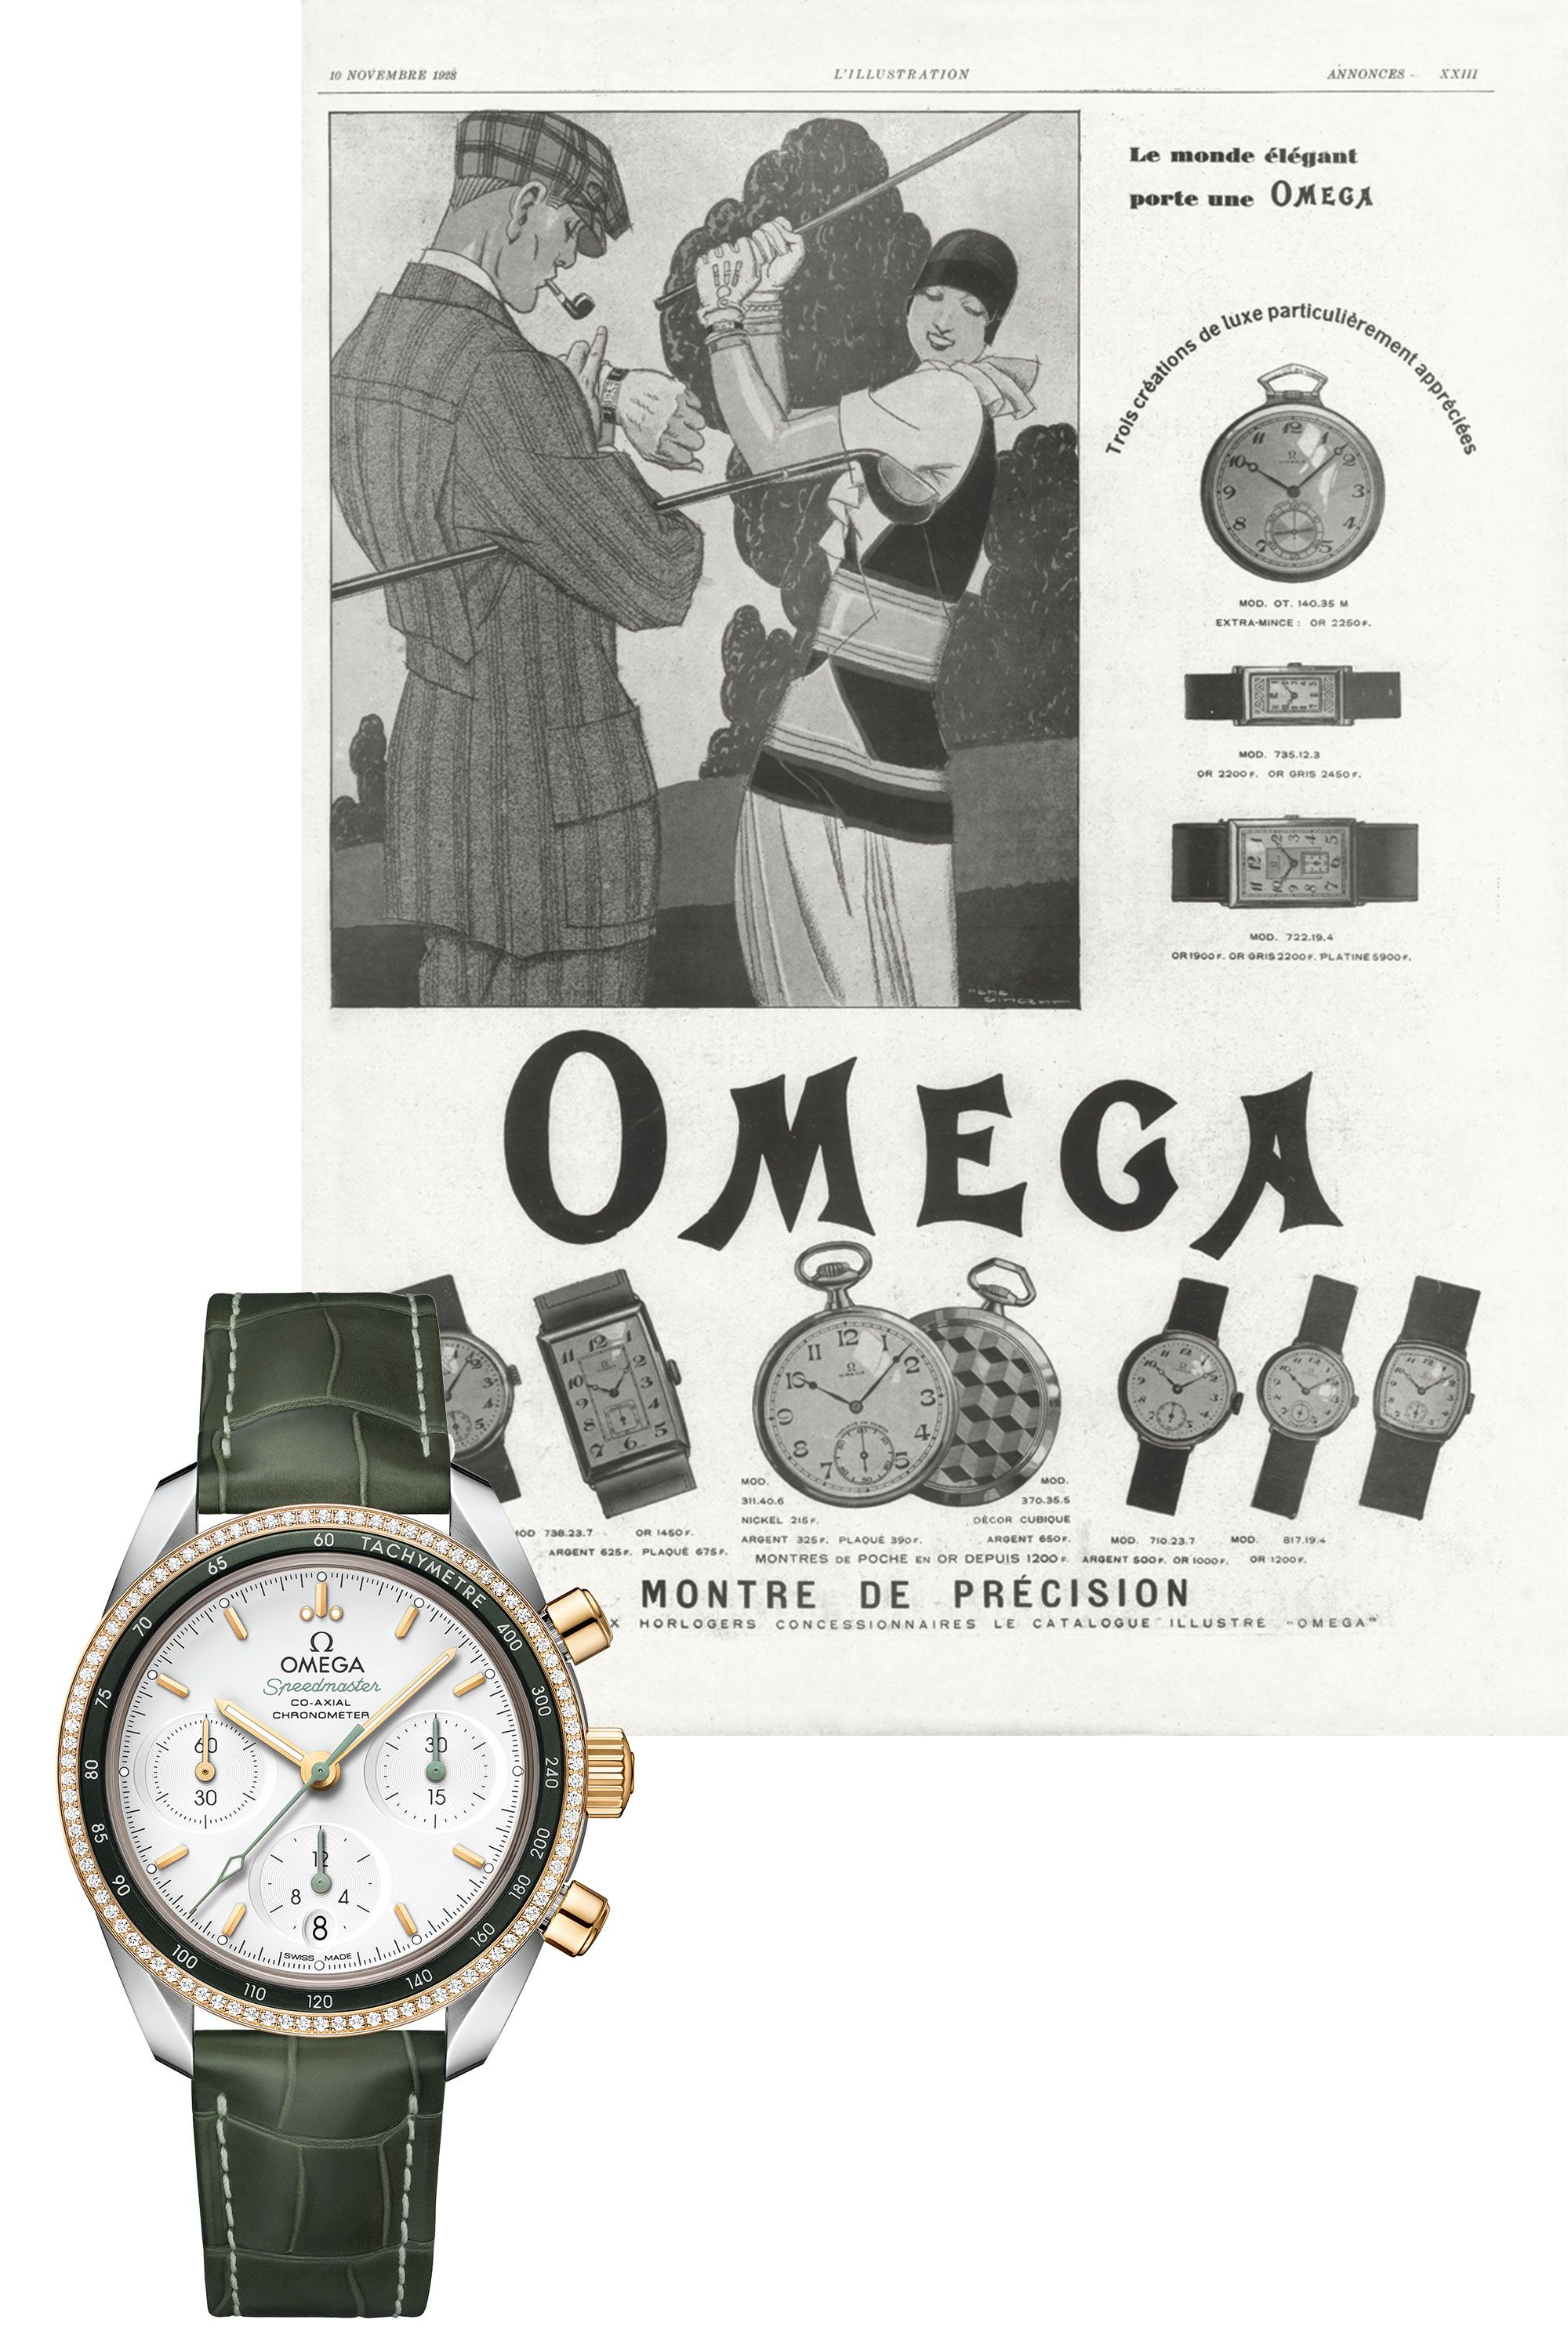 """<p>From&nbsp&#x3B;Victorian-era pocket watches to Speedmasters built for walking on the moon, Omega is steeped in history. Its modern mechanical ladies chronograph, made in 18K yellow gold with a green aluminum bezel and a heap of diamonds, is both edgy and everyday wearable. Green is the new neutral, after all.</p><p><em data-redactor-tag=""""em"""" data-verified=""""redactor"""">&nbsp&#x3B;Speedmaster 38 Co- Axial Chronograph, $9,300&#x3B;&nbsp&#x3B;</em><a href=""""https://www.omegawatches.com/watches/speedmaster/speedmaster-38mm/co-axial-chronograph-38-mm/32428385002001/"""" target=""""_blank"""" data-tracking-id=""""recirc-text-link""""><em data-redactor-tag=""""em"""" data-verified=""""redactor"""">omega.com</em></a></p>"""